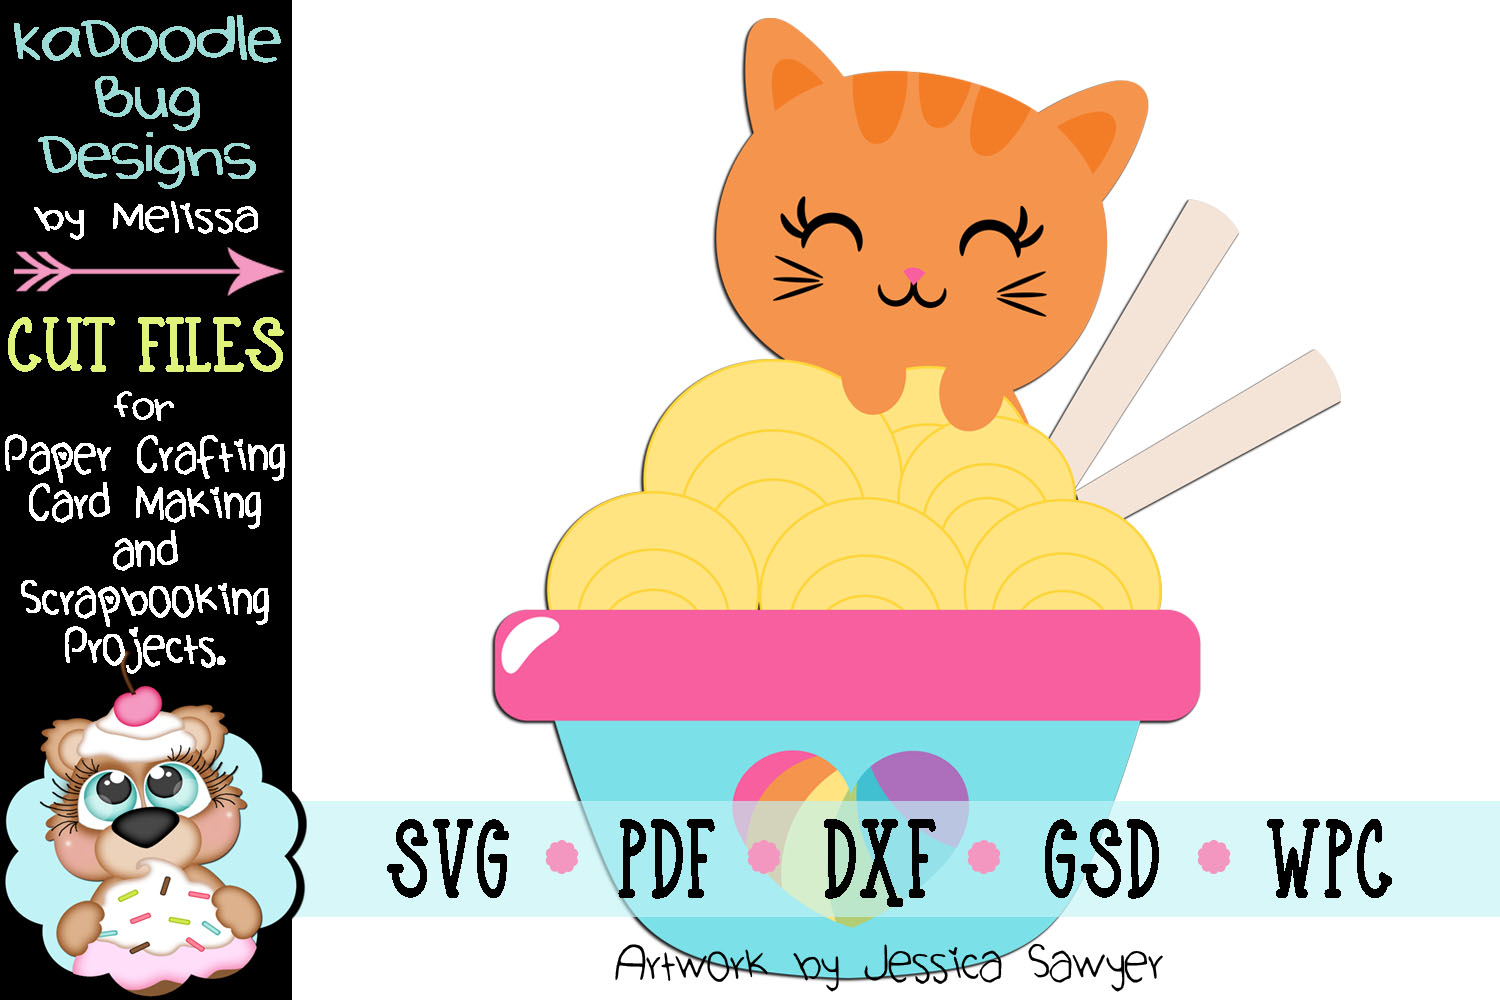 Cat Peeking Over Noodles Cut File - SVG PDF DXF GSD example image 1